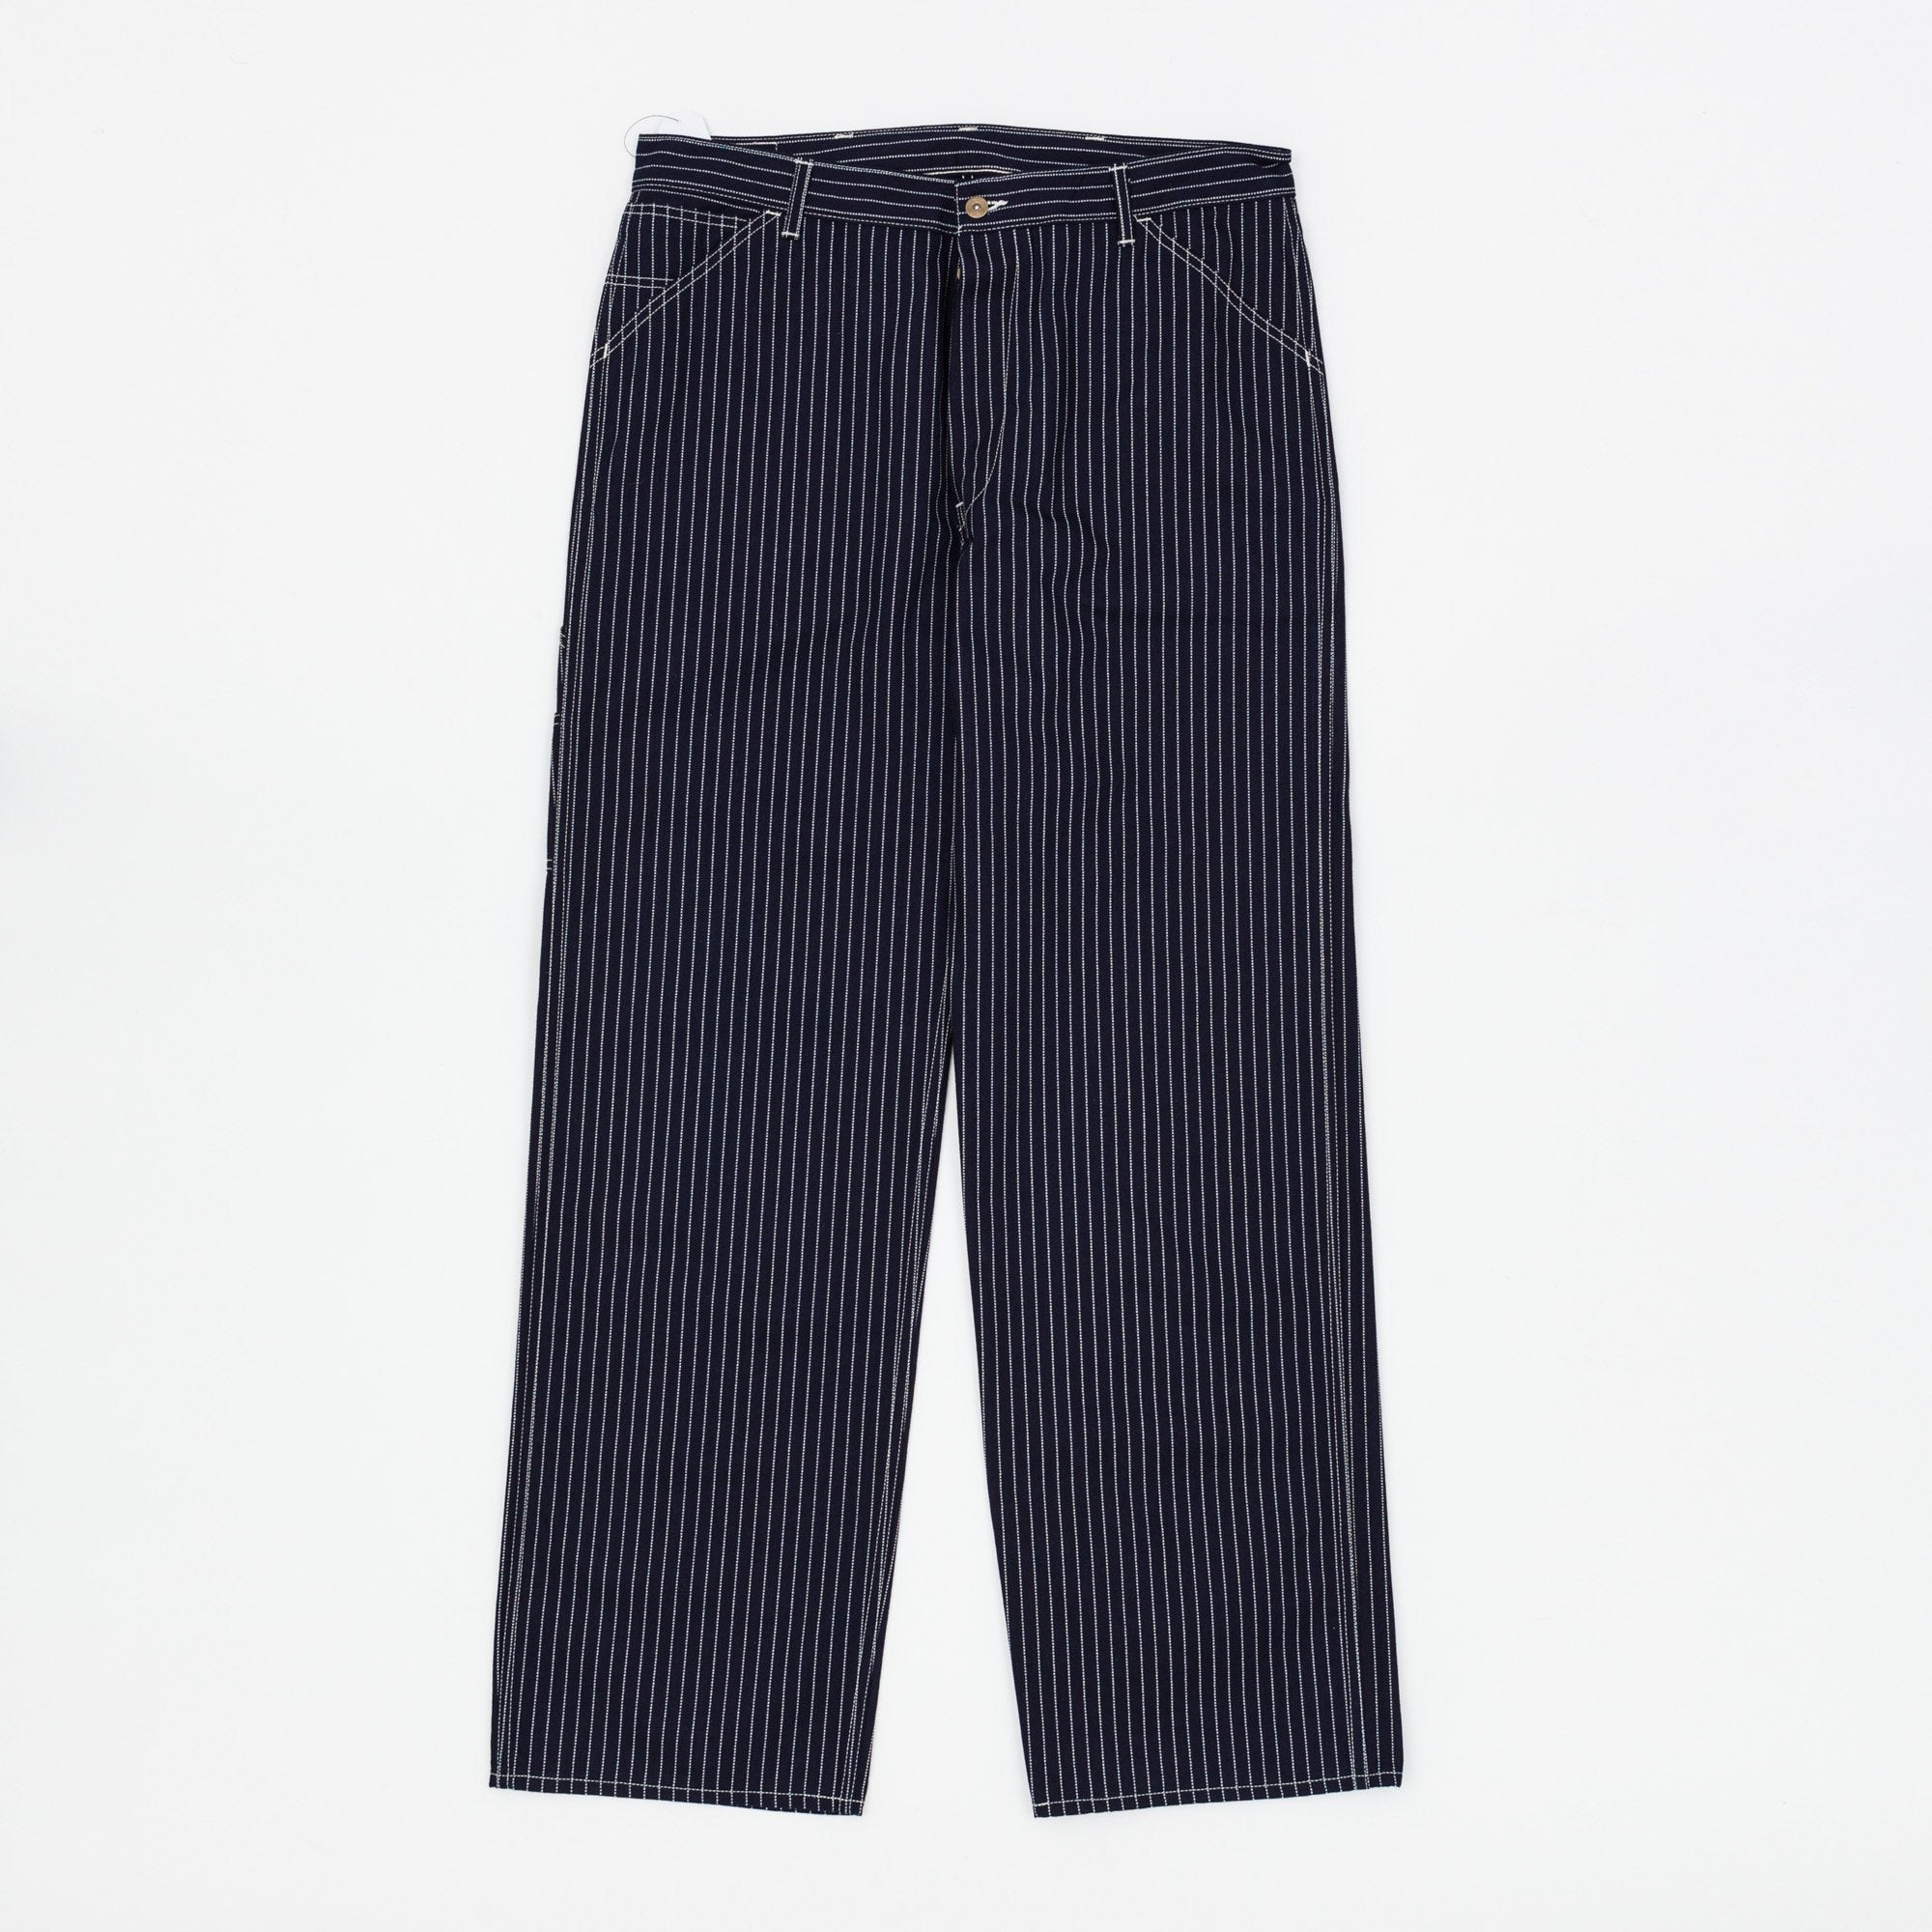 The Real McCoy's 8HU Indigo Wabash Stripe Trousers